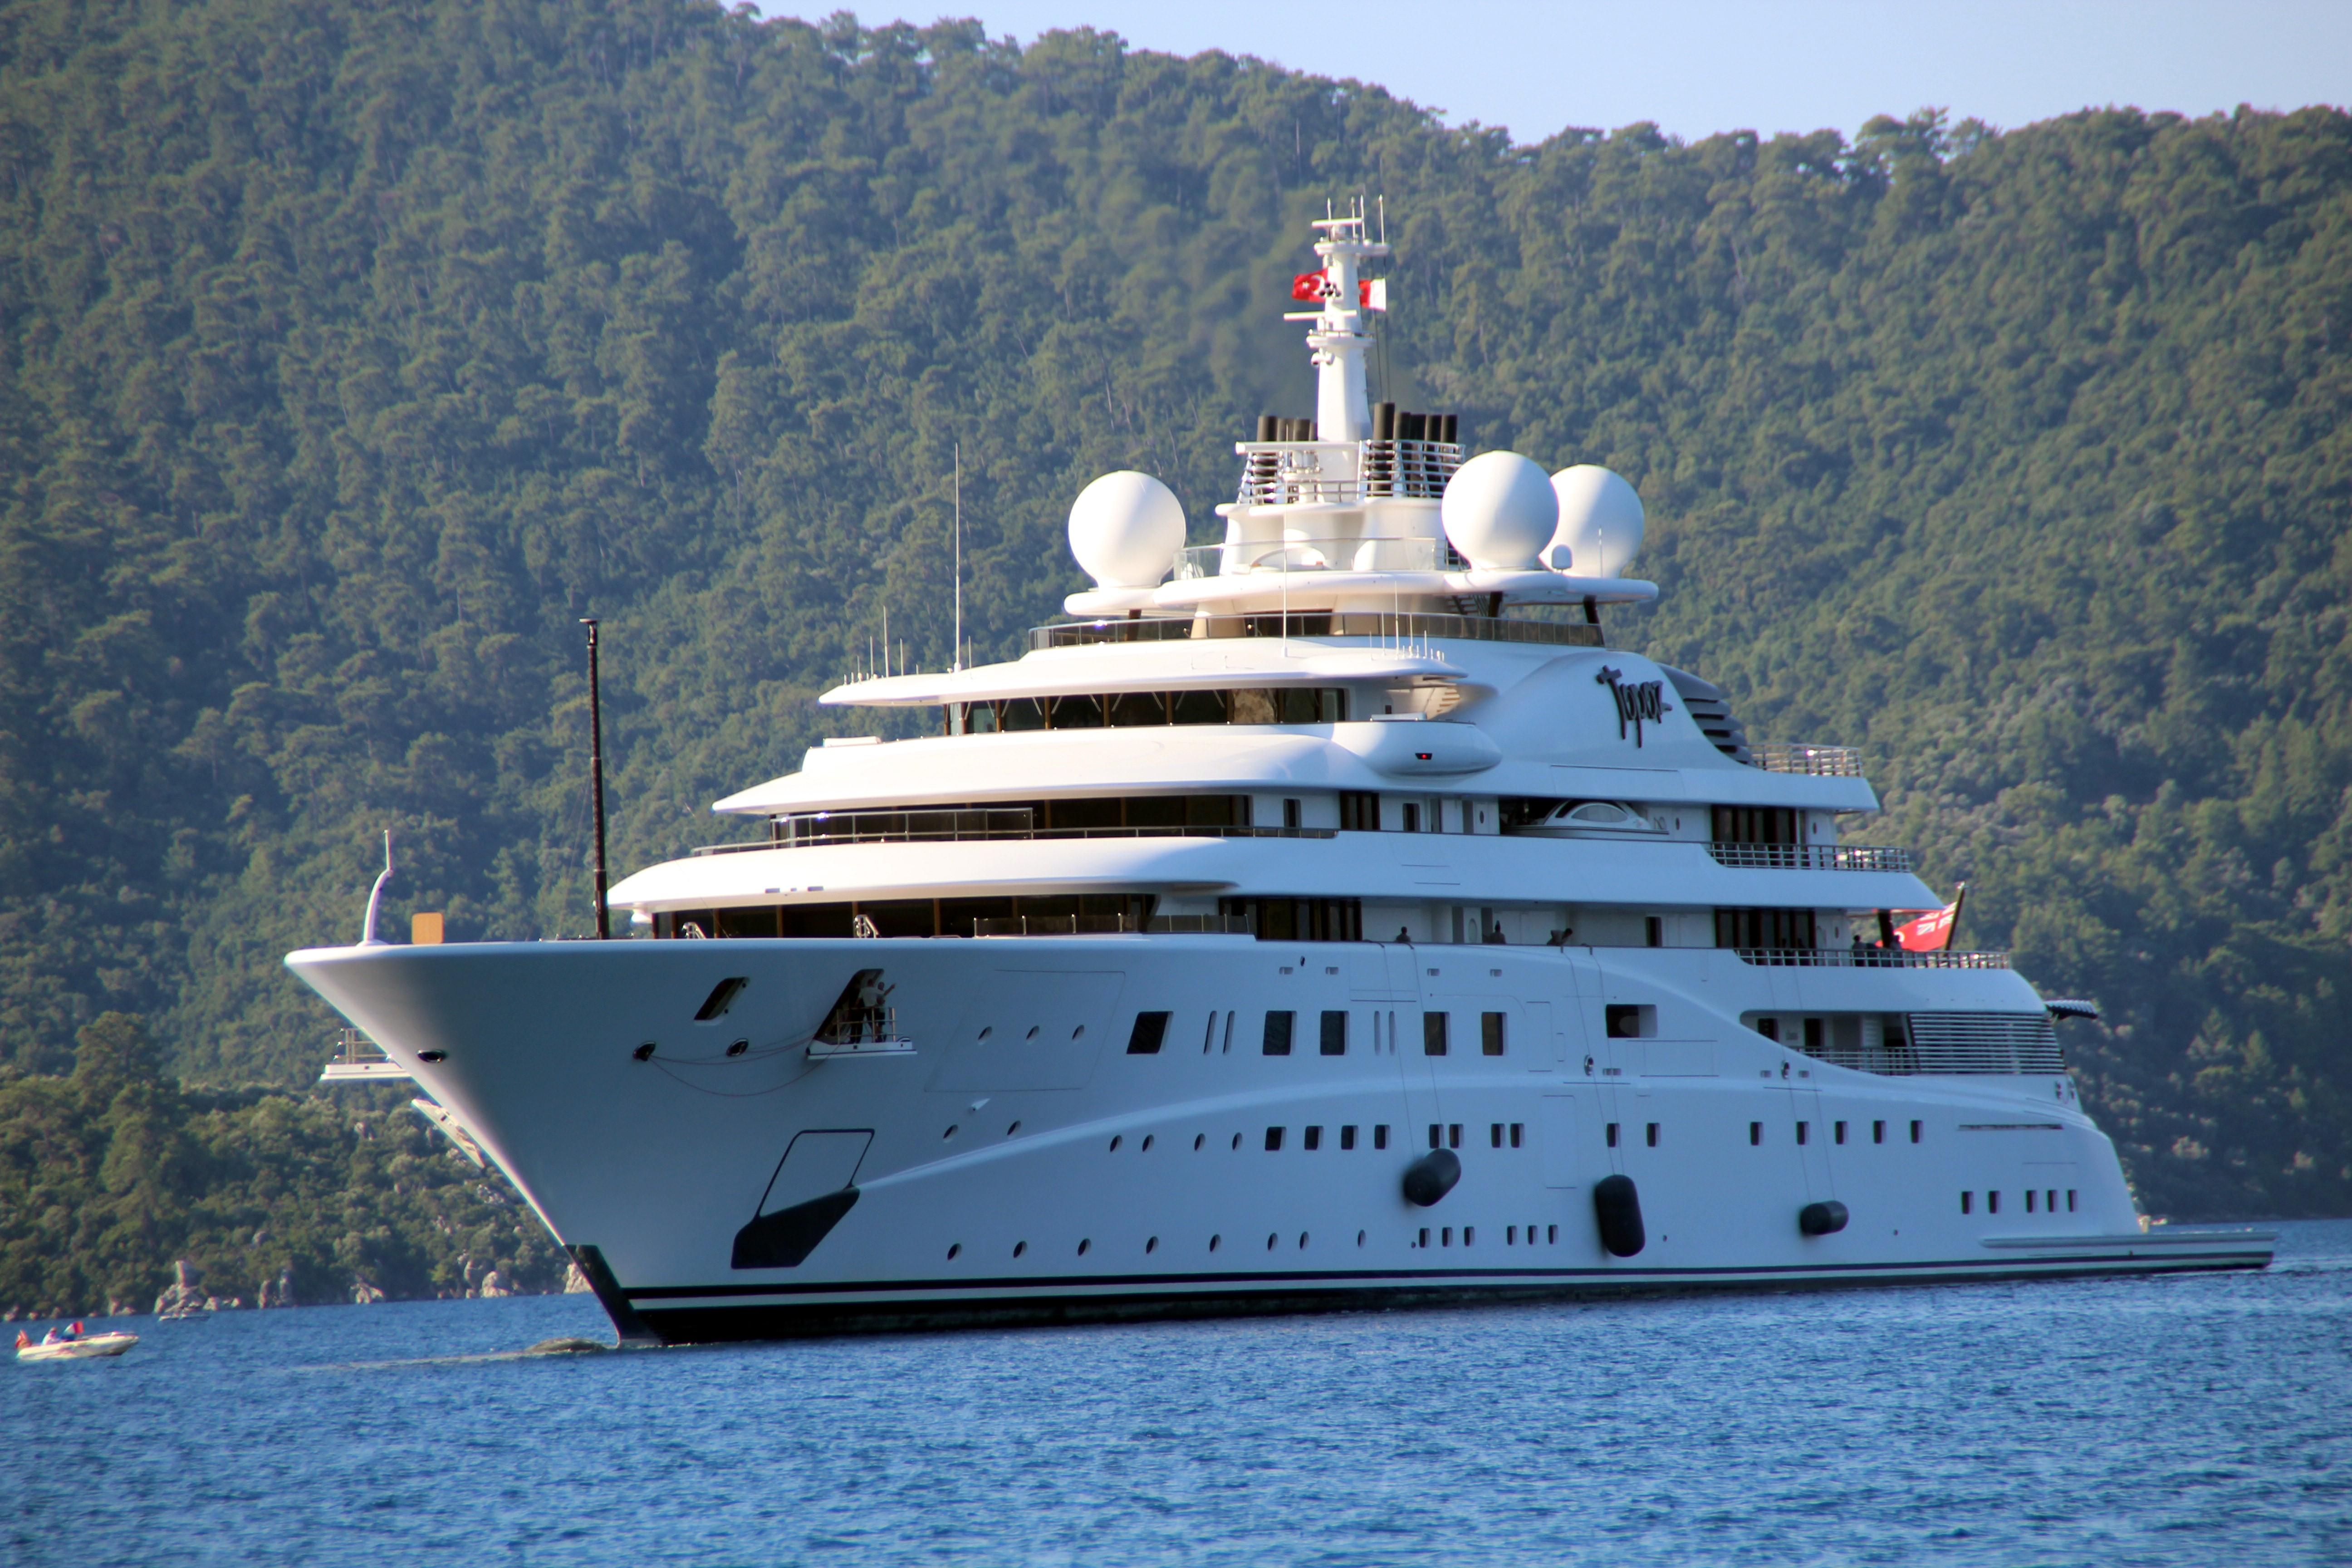 Sheikh Mansour's yacht was once borrowed by Leo DiCaprio